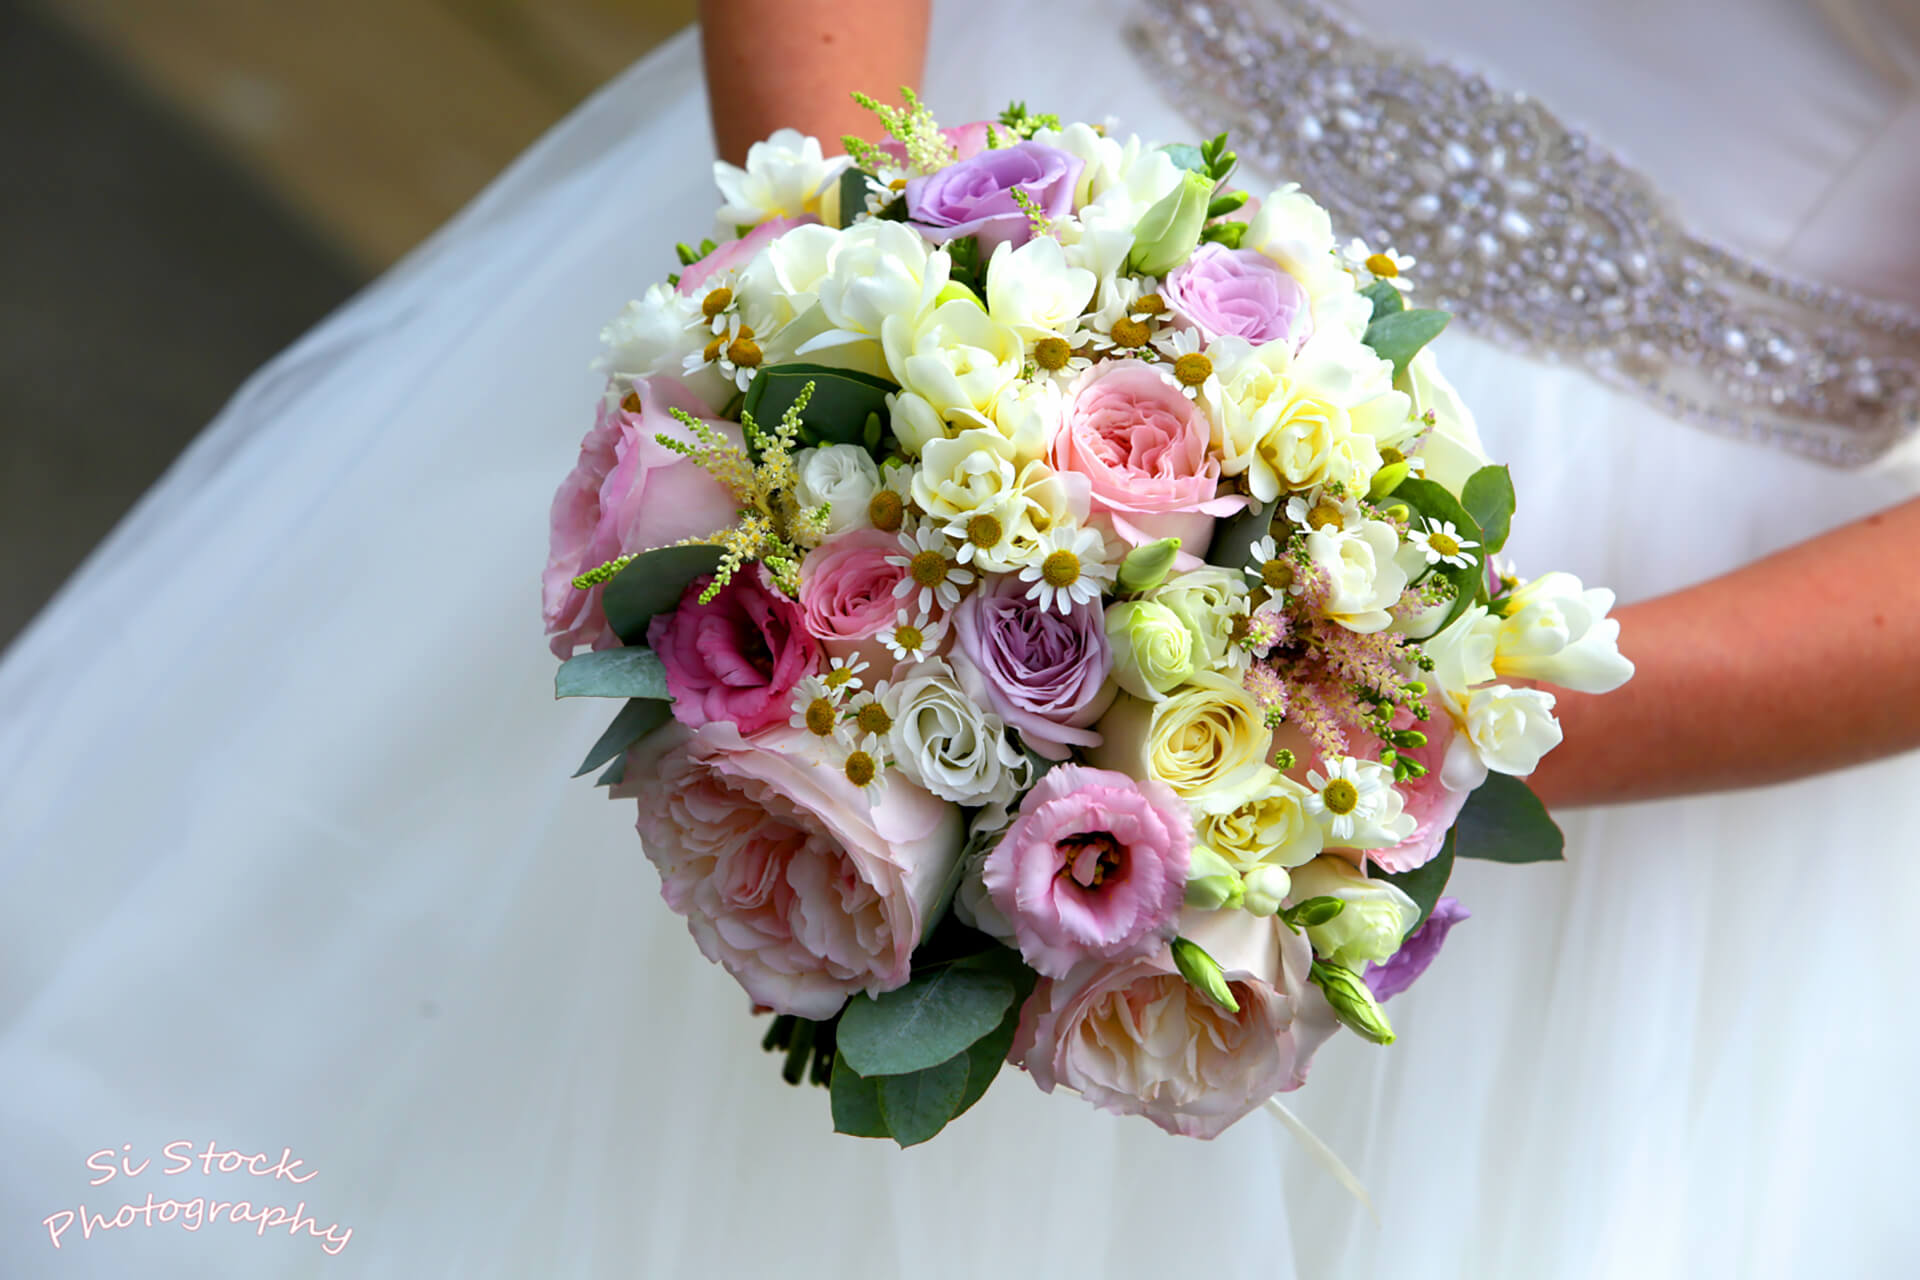 Emma's beautiful bouquet captured by Si Stock.